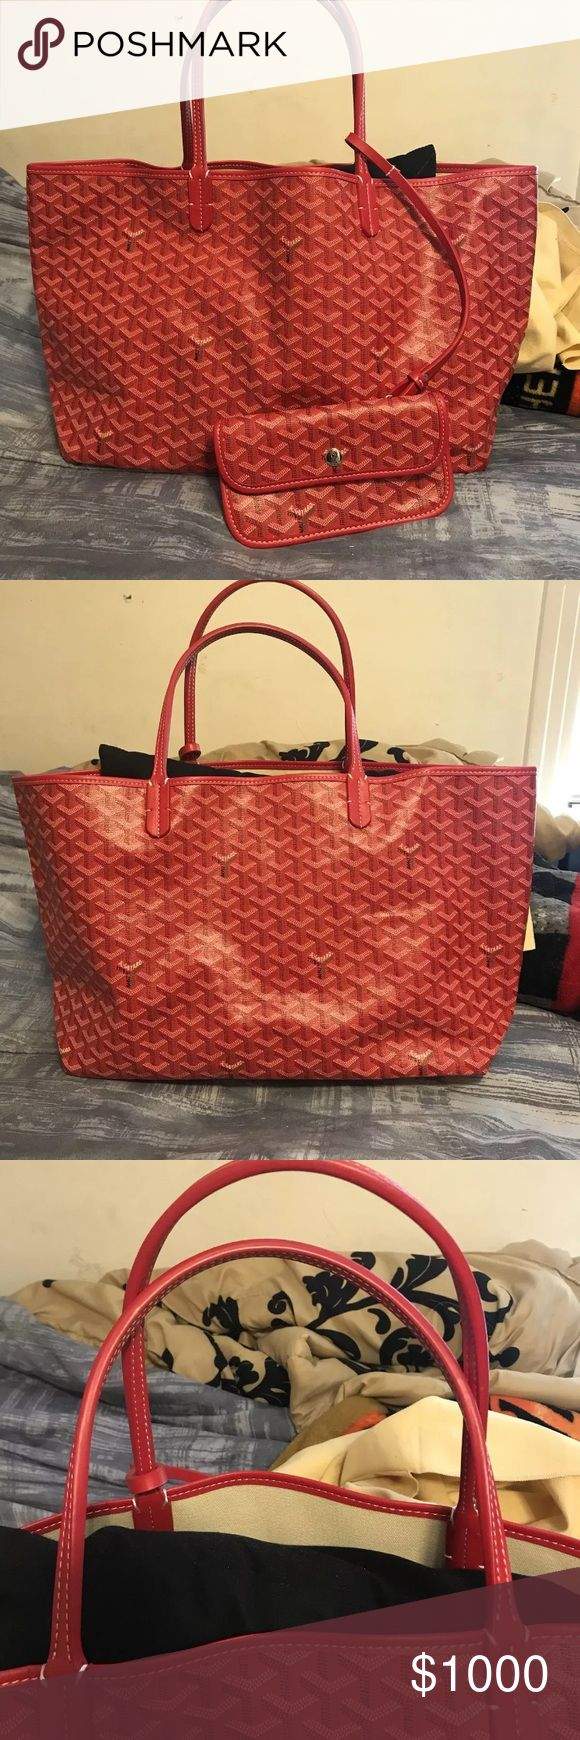 Goyard Women's Bag Perfect condition & 100% authentic ... if you are interested in purchasing this item TEXT !! (321) 296-9063.. prices are negotiable Goyard Bags